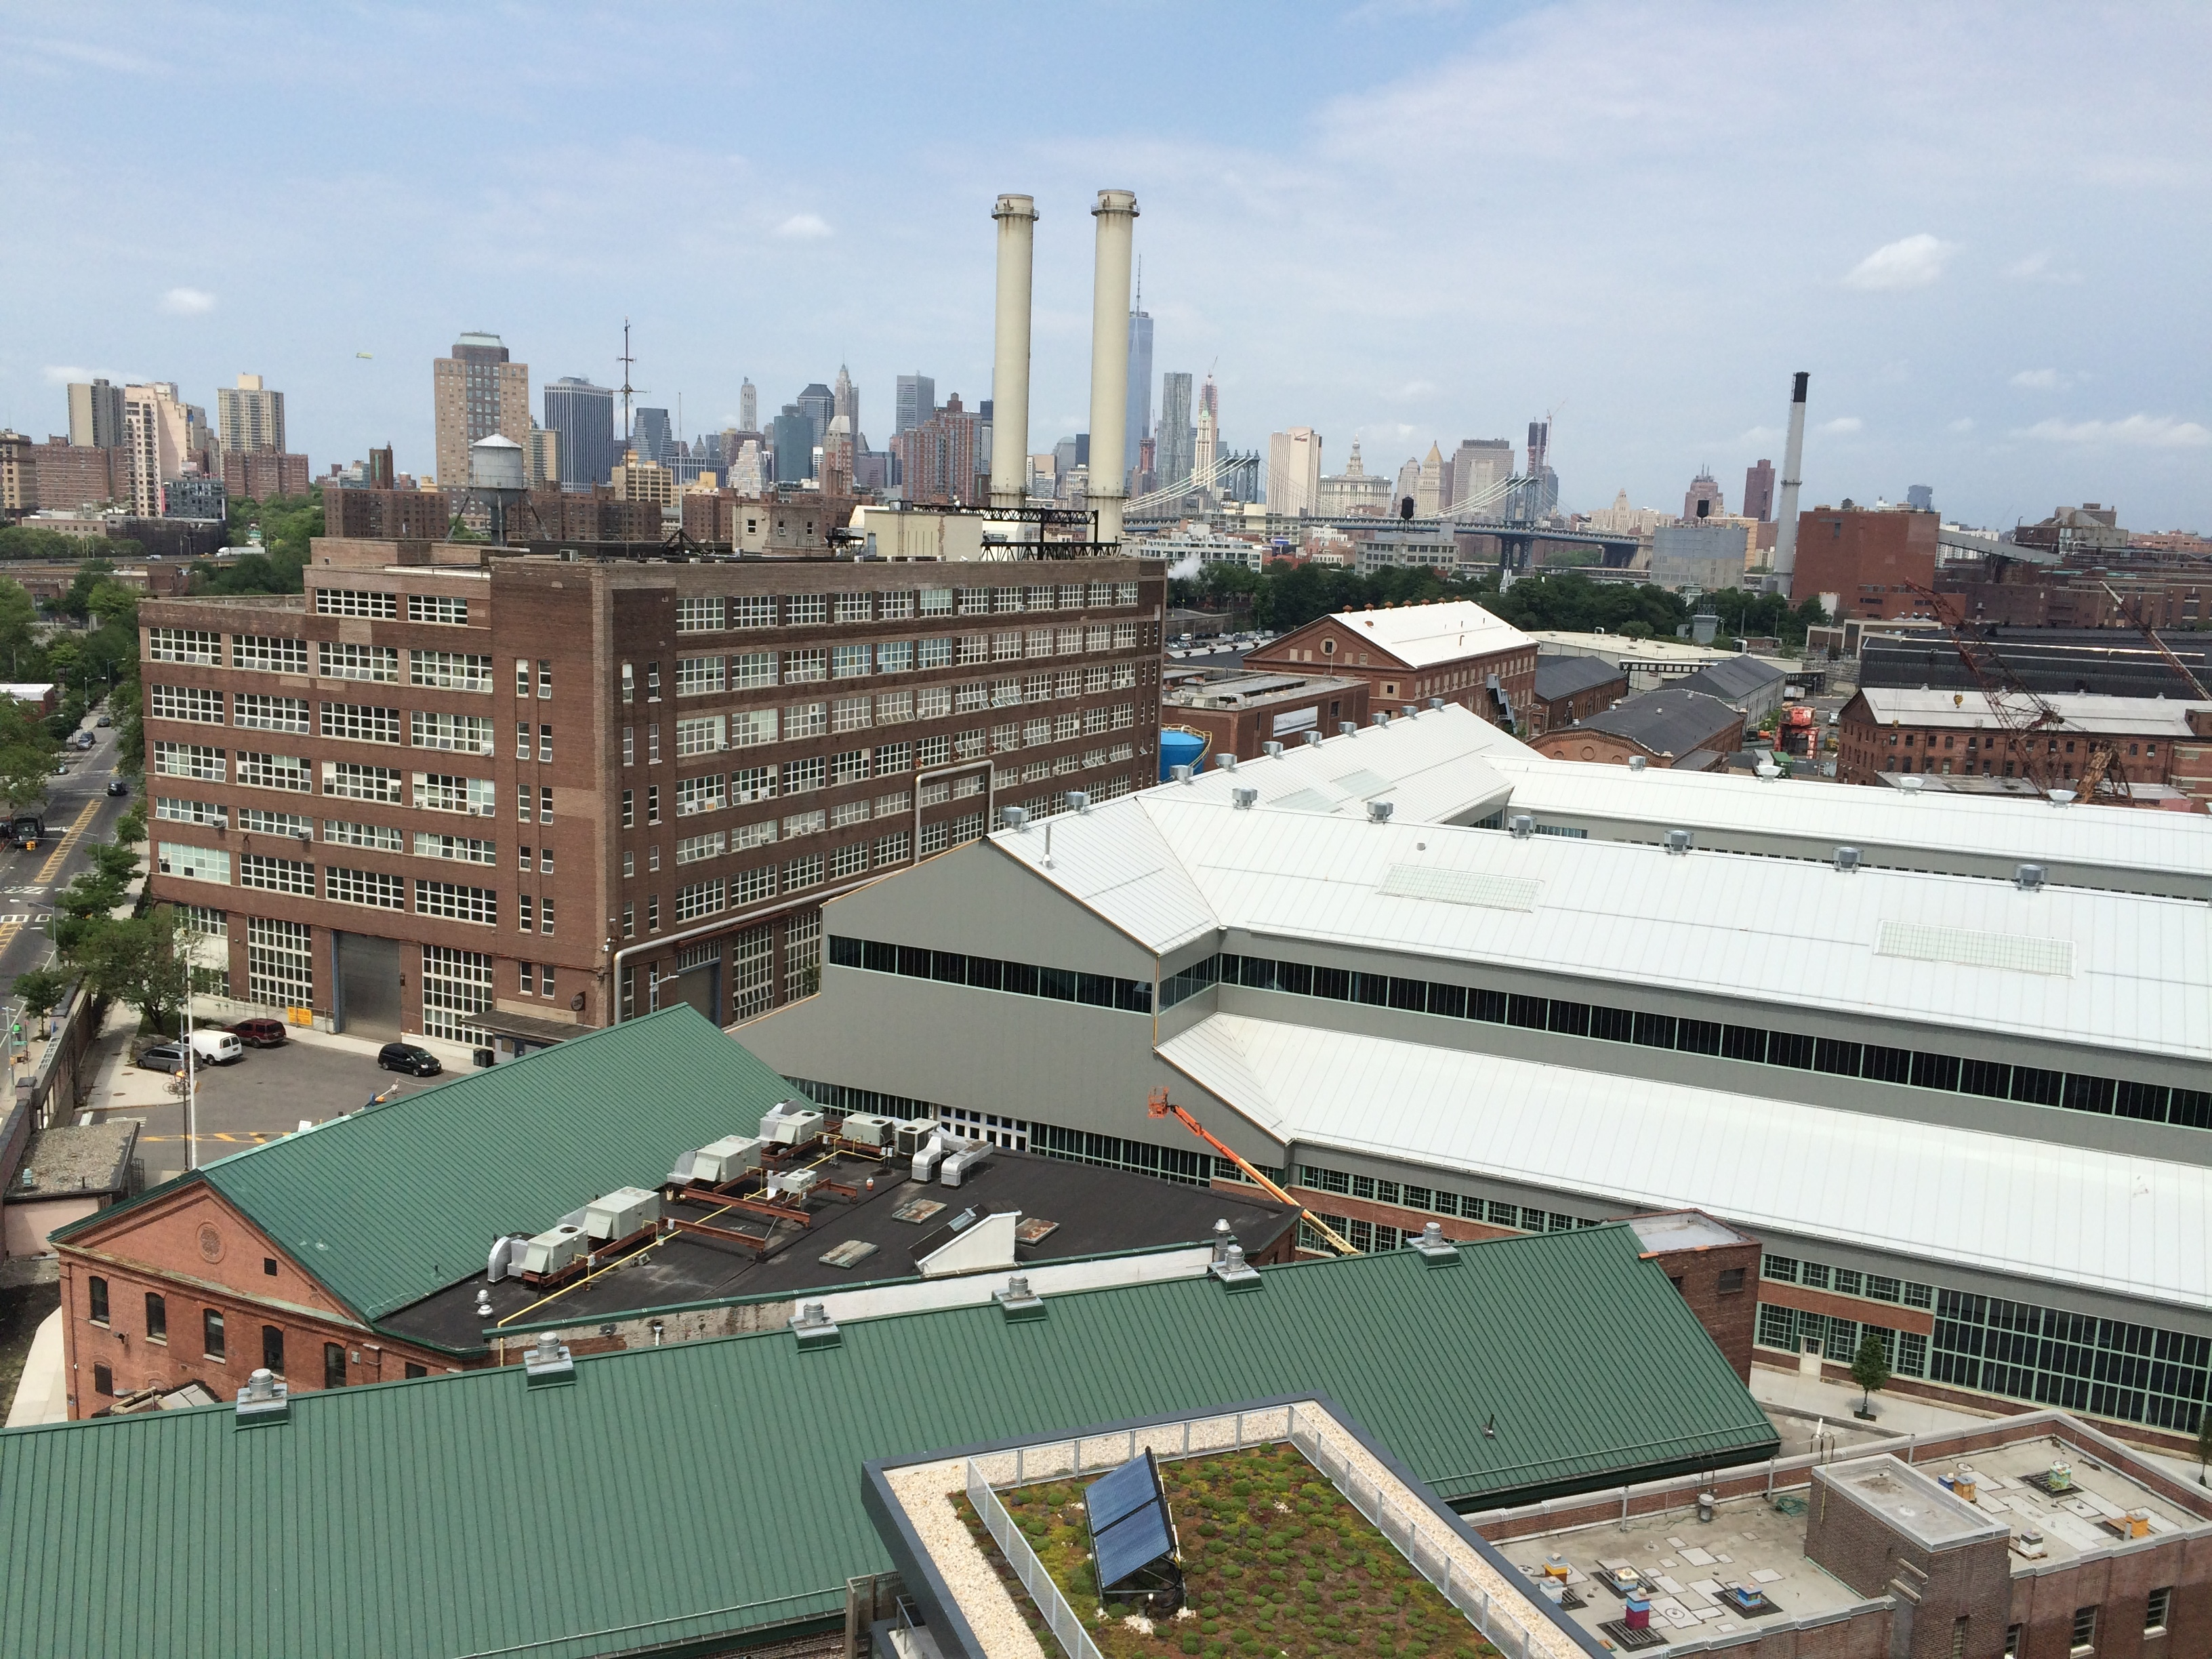 Aerial view of historic and modern buildings at the Navy Yard